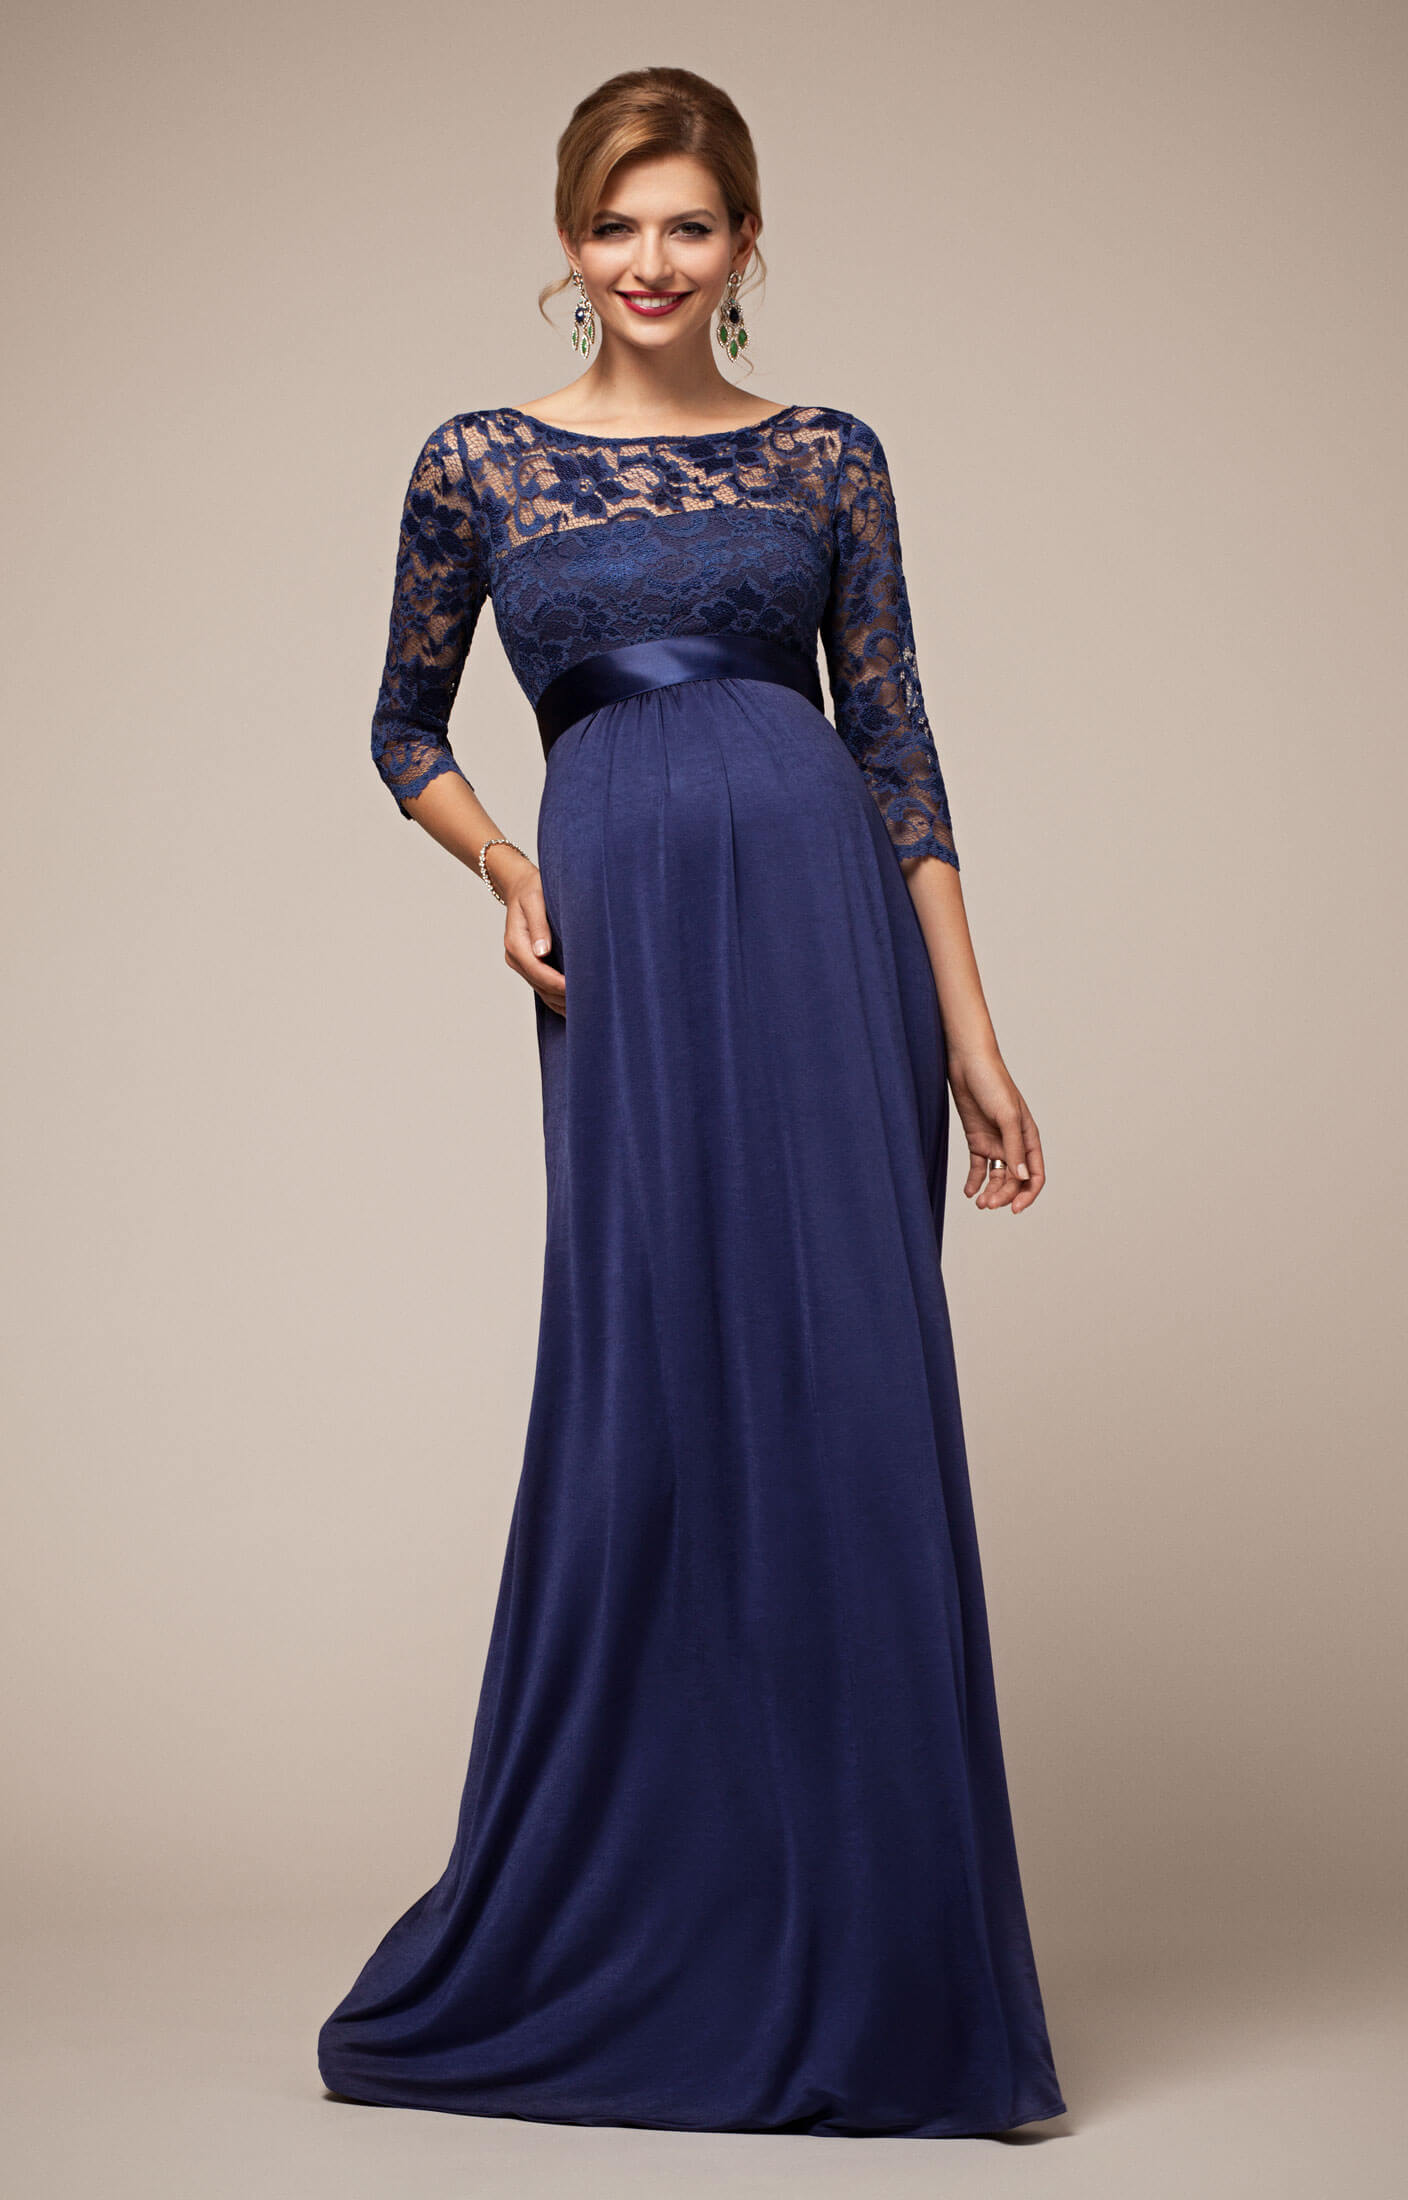 Award-winning designers of Maternity Occasion Wear and Maternity Wedding Dresses. Made in Britain, loved by celebrities and worn by Royalty. Your destination for stylish and elegant maternity evening wear and stunning maternity party dresses.